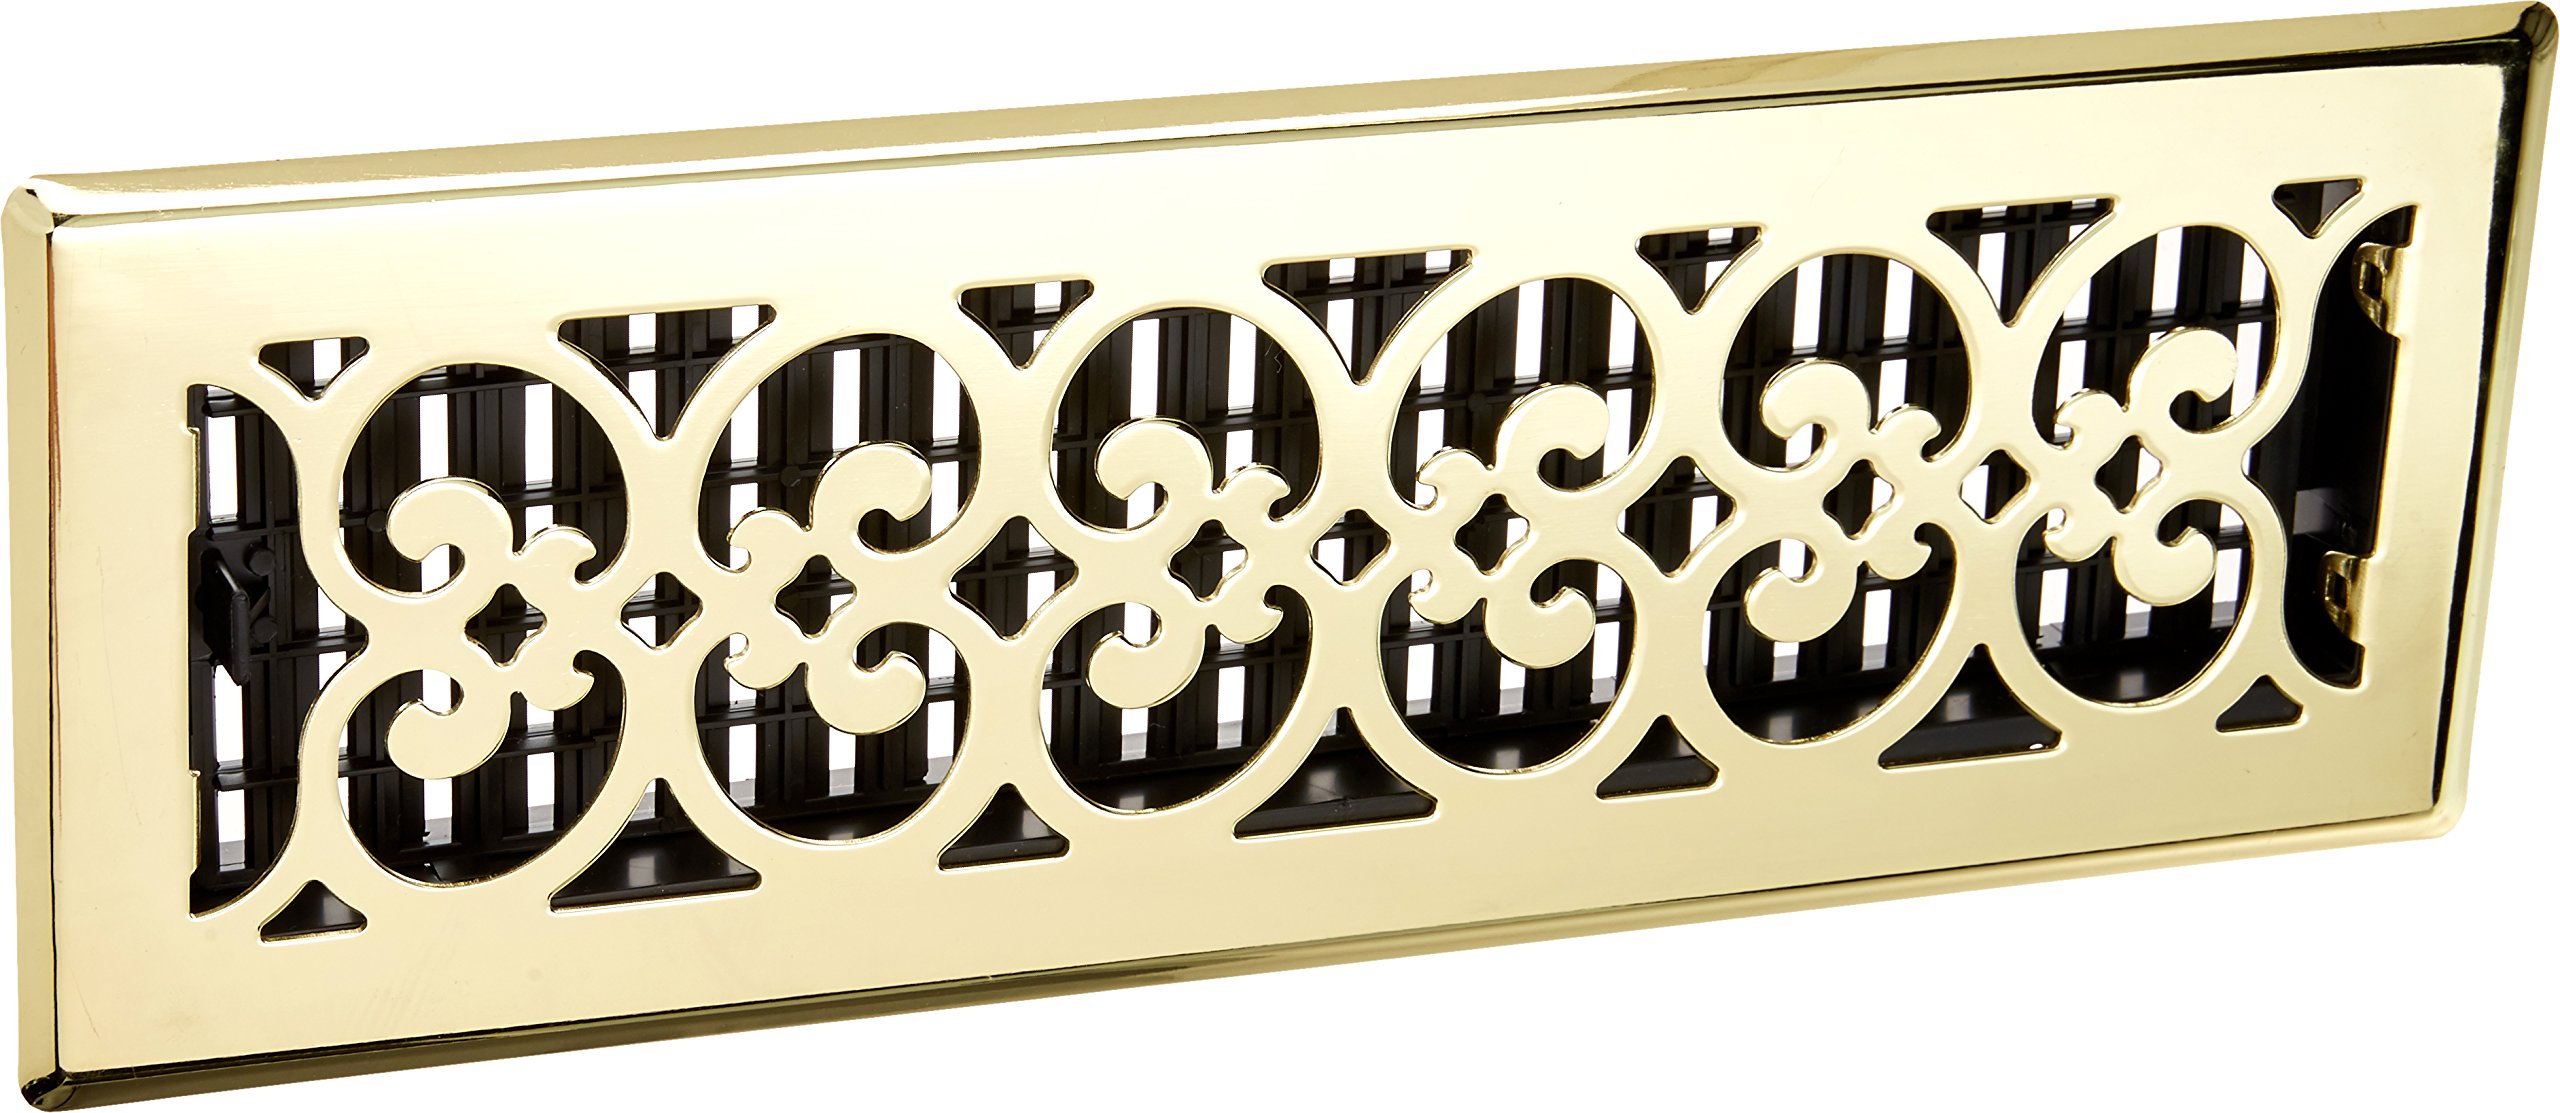 Decor Grates SPH414 4-Inch by 14-Inch Scroll Floor Register, Polished Brass Finish